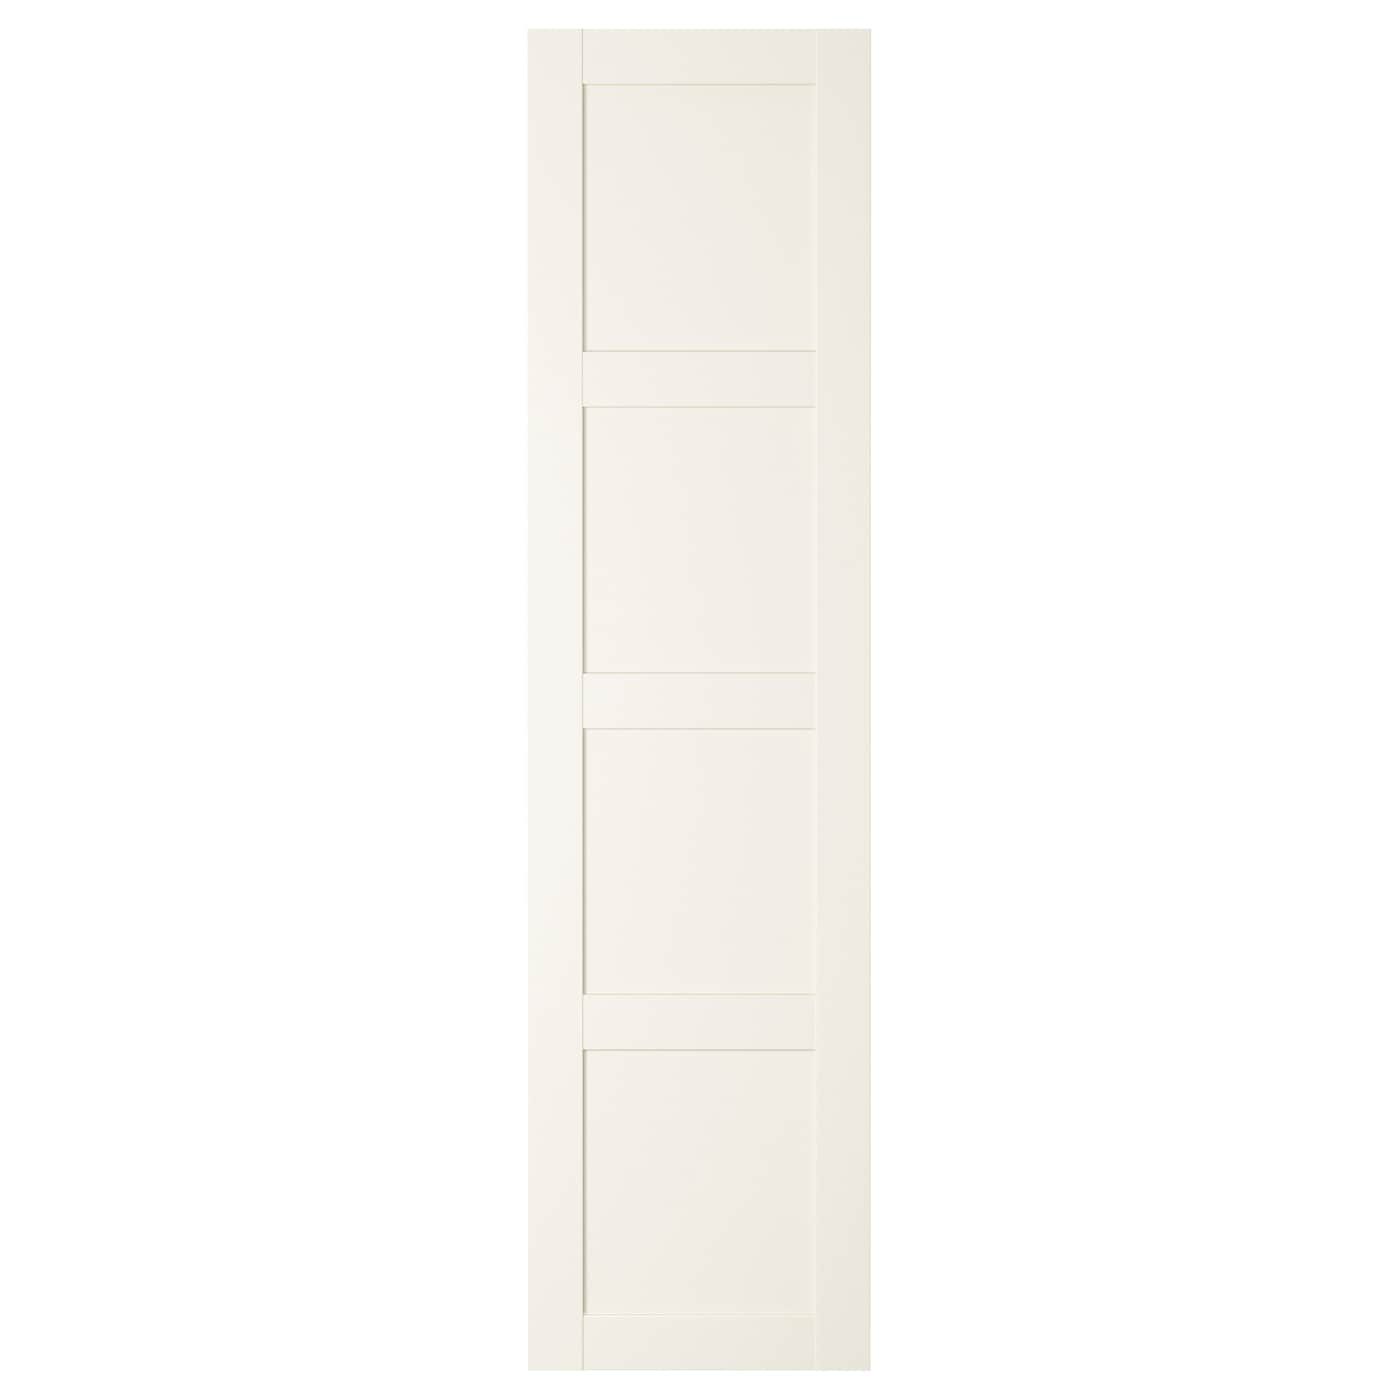 IKEA BERGSBO door with hinges 10 year guarantee. Read about the terms in the guarantee